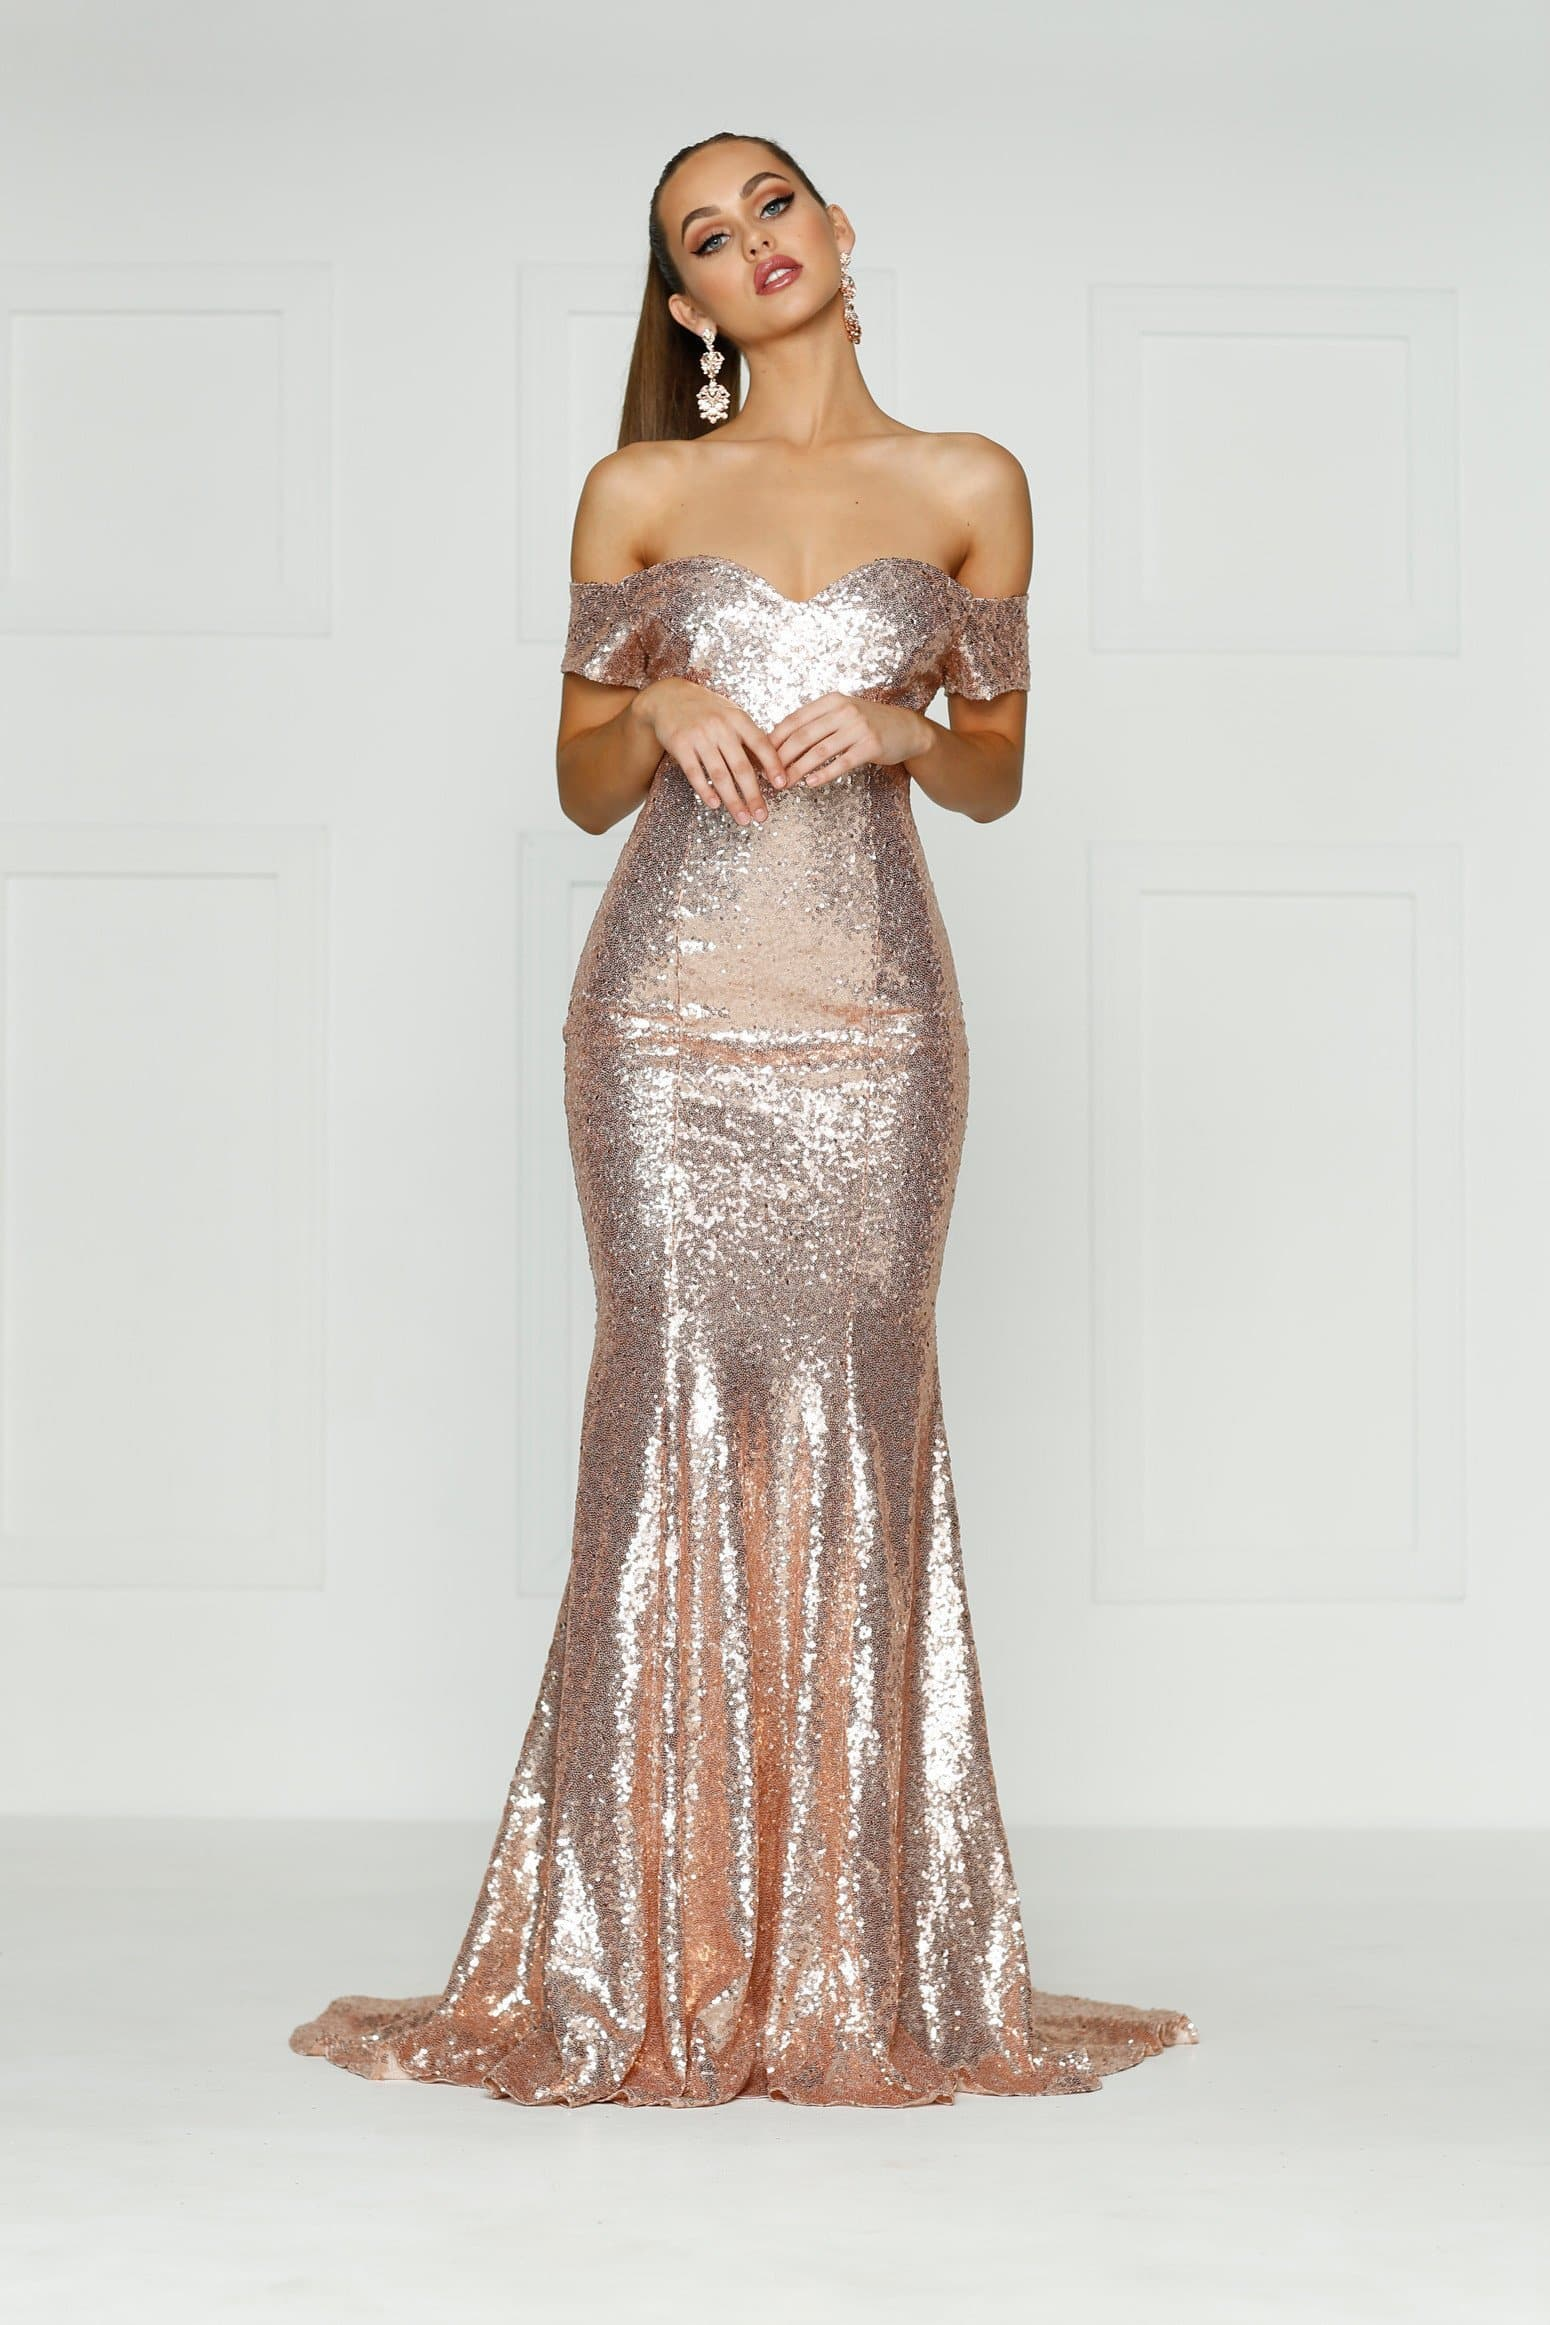 Kim Formal Dress - Rose Gold Sequins Off-Shoulder Full Length Mermaid Gown